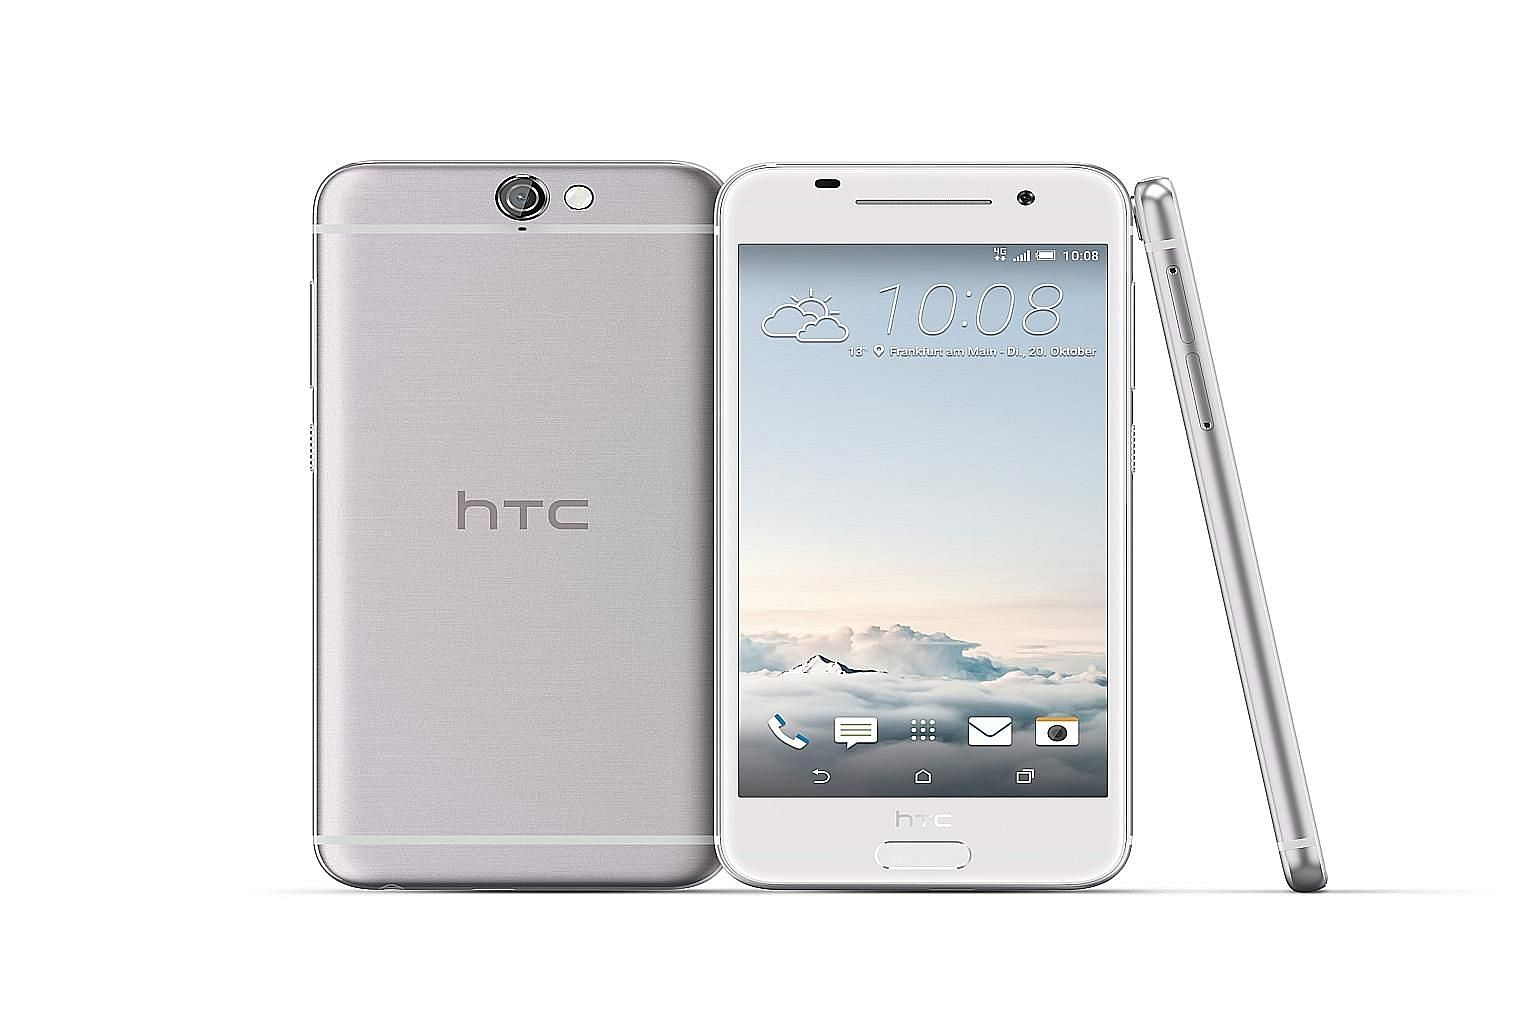 HTC has taken a page from Apple's design manual with the HTC One A9. Gone are the previous ungainly designs, resulting in a sleek, polished device.